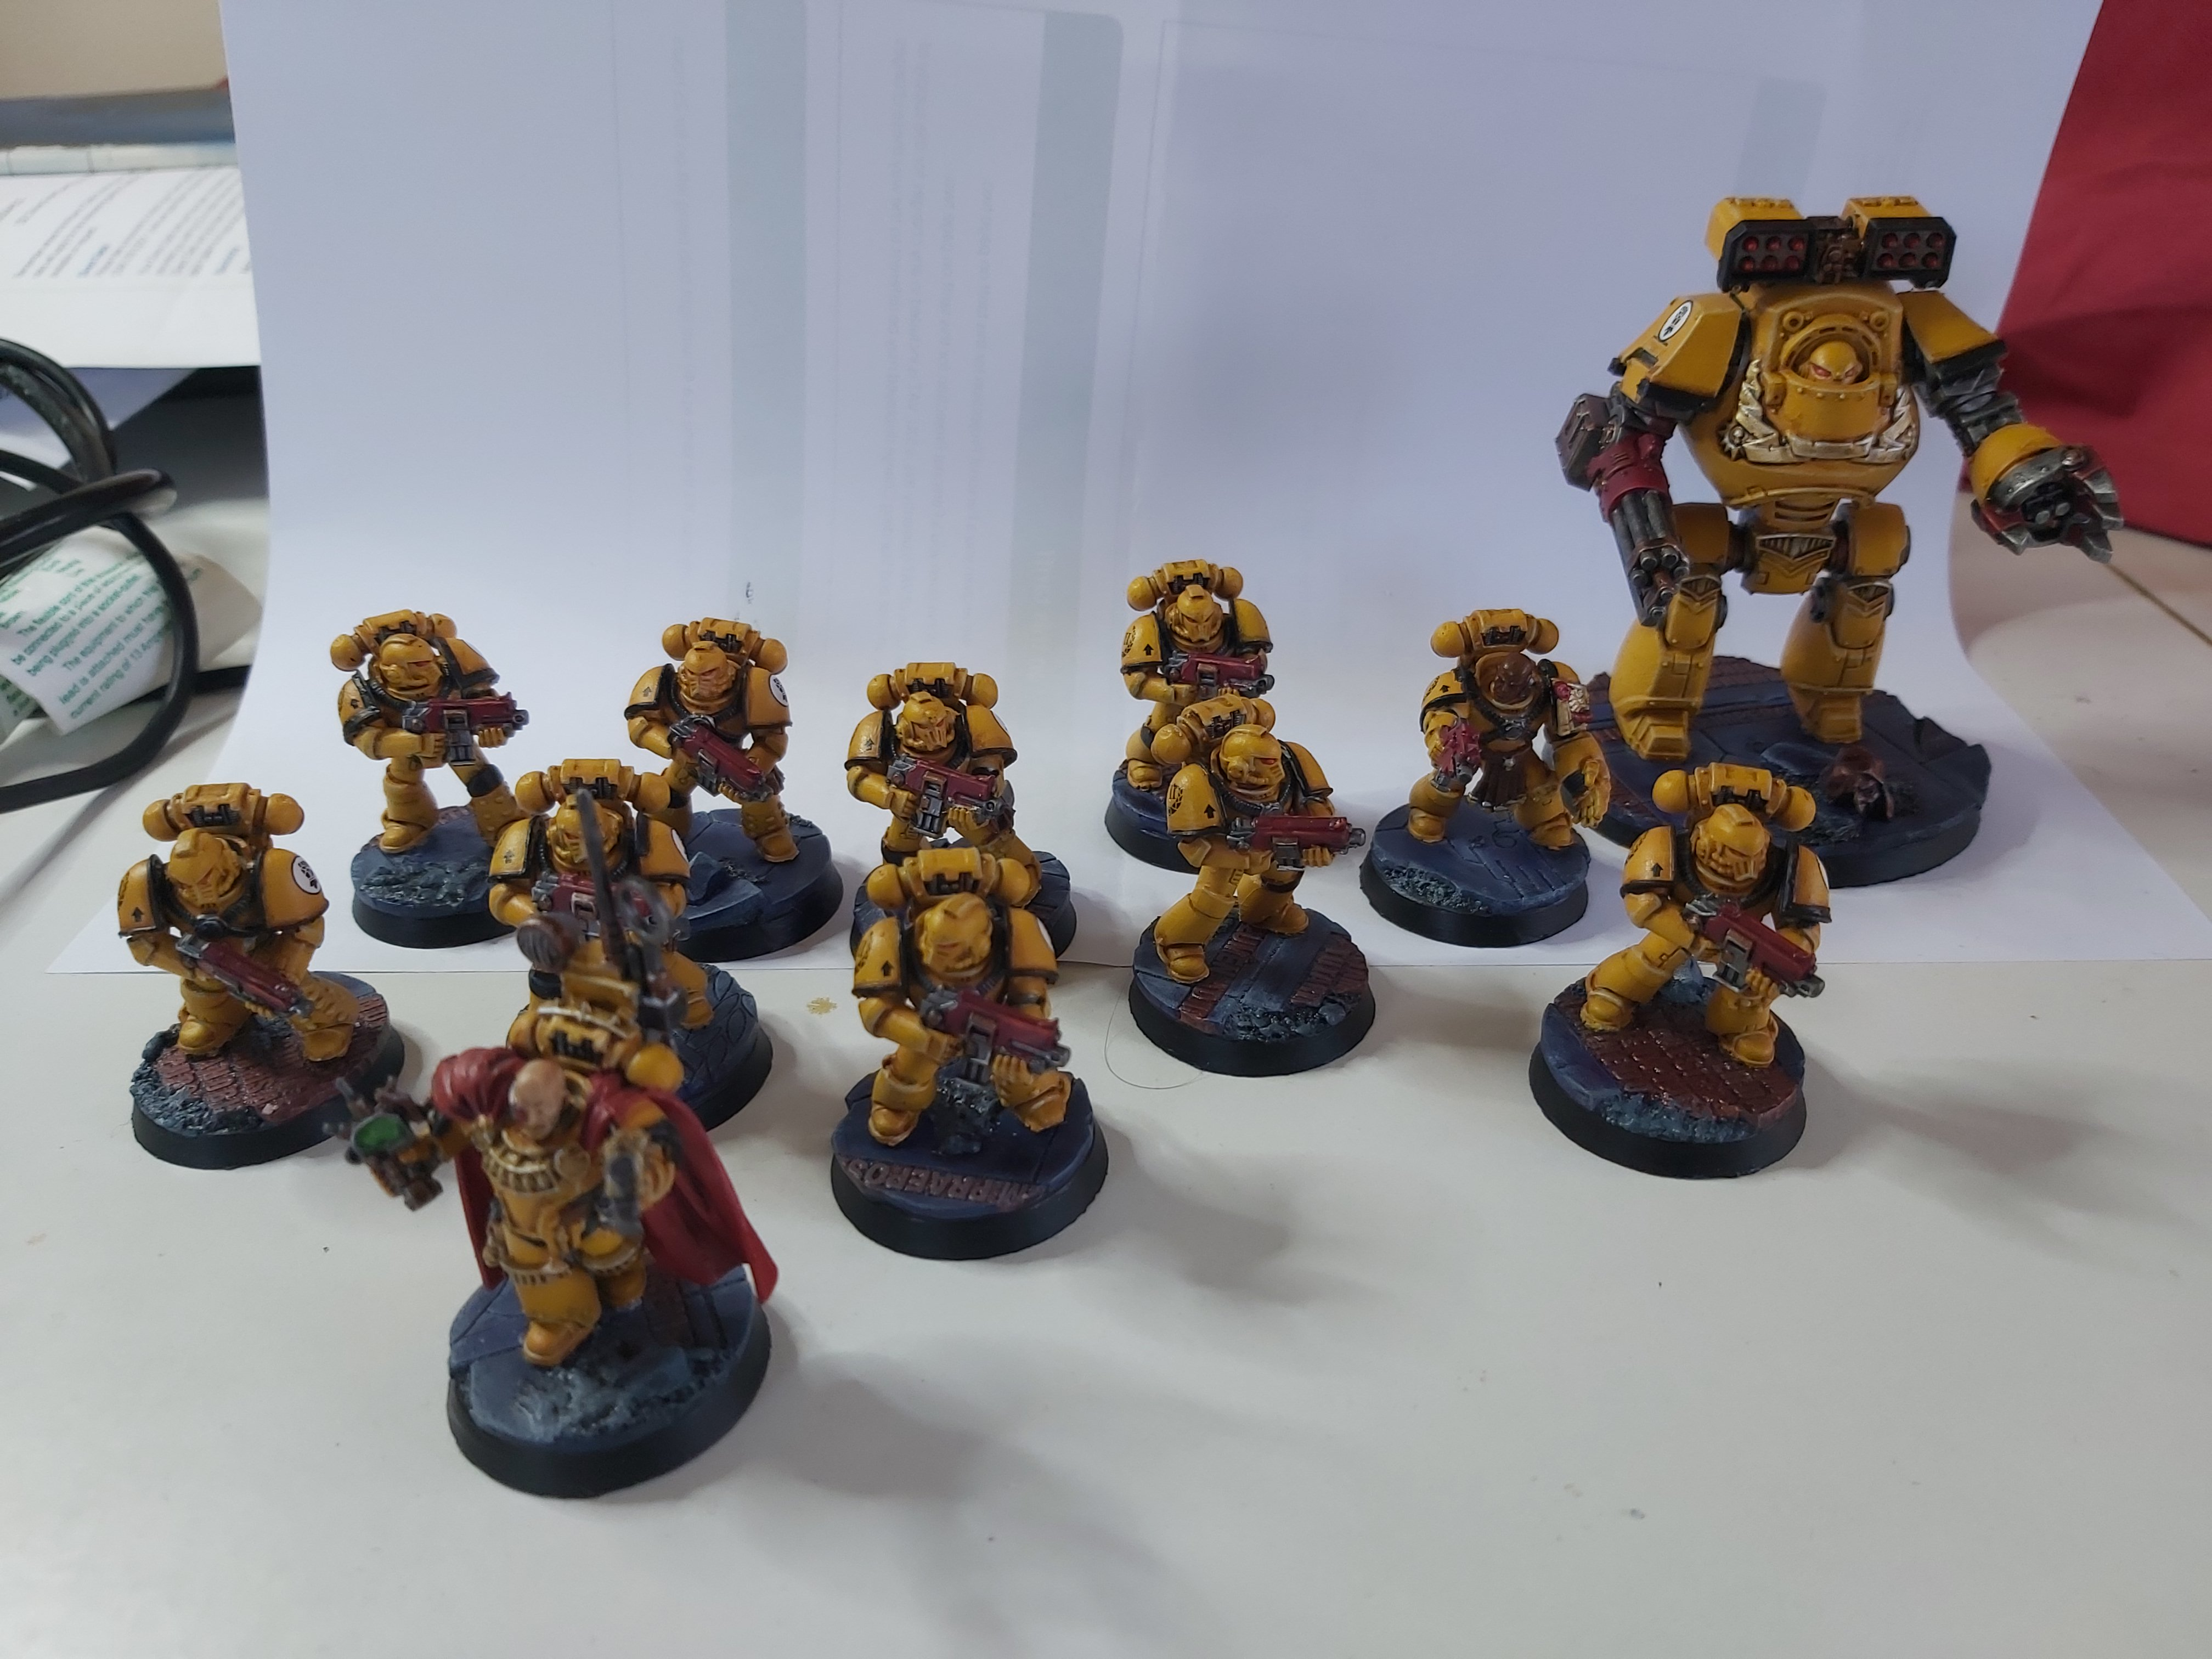 A small force of Imperial Fists, yellow and black armoured space marines on blue bases